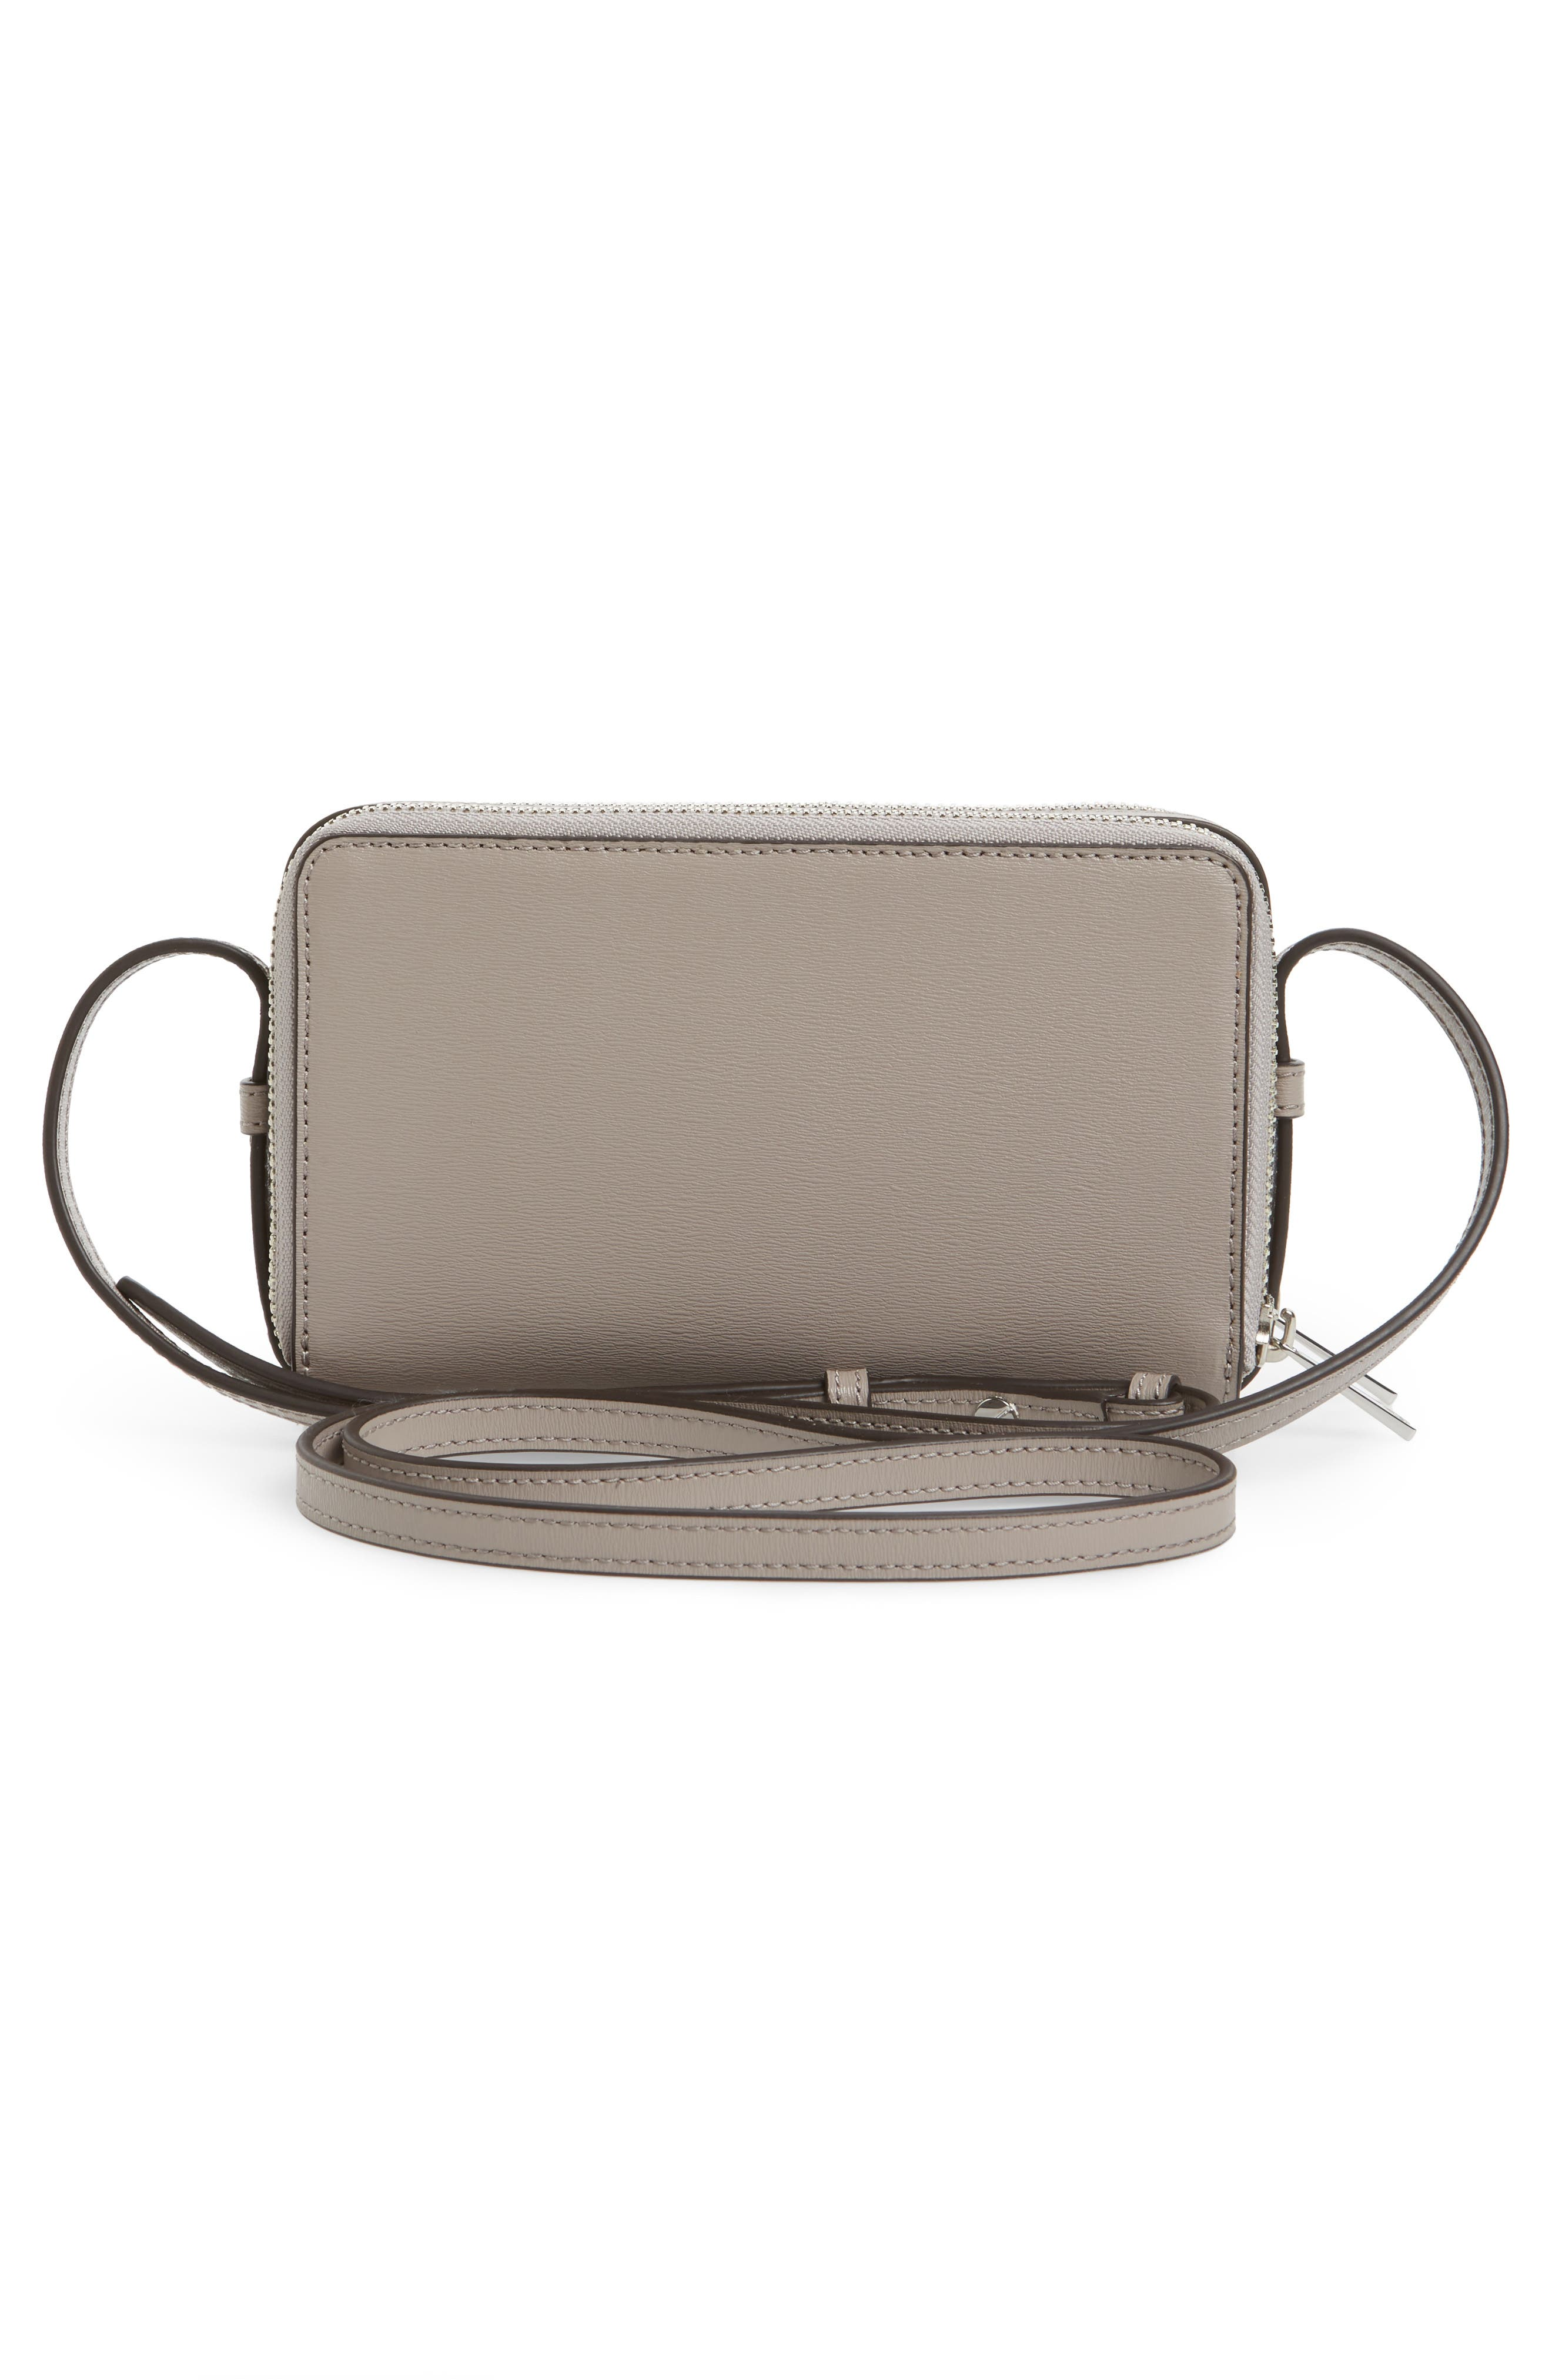 TORY BURCH Mini Parker Leather Crossbody Bag Gray | ModeSens